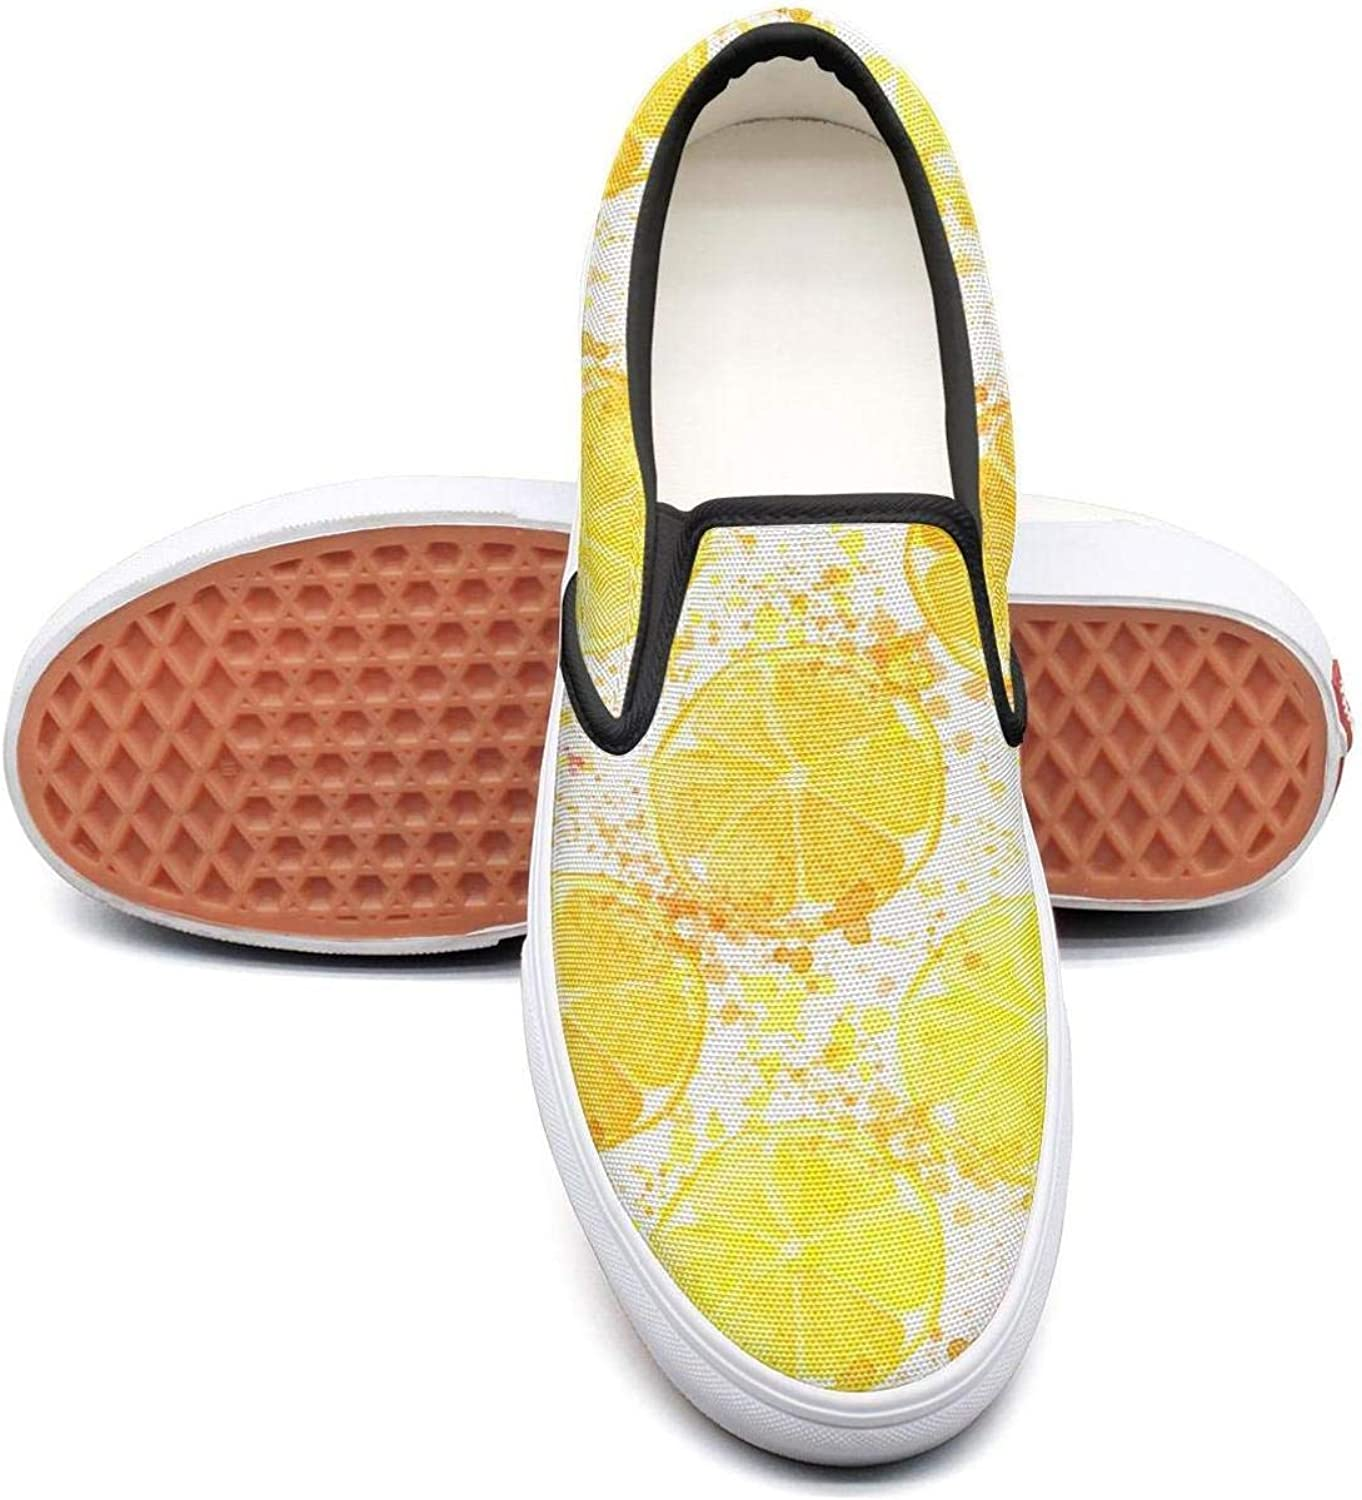 Sernfinjdr Women's Watercolor Lemon Hand Drawn Fashion Casual Canvas Slip on shoes Casual Cycling Sneakers shoes